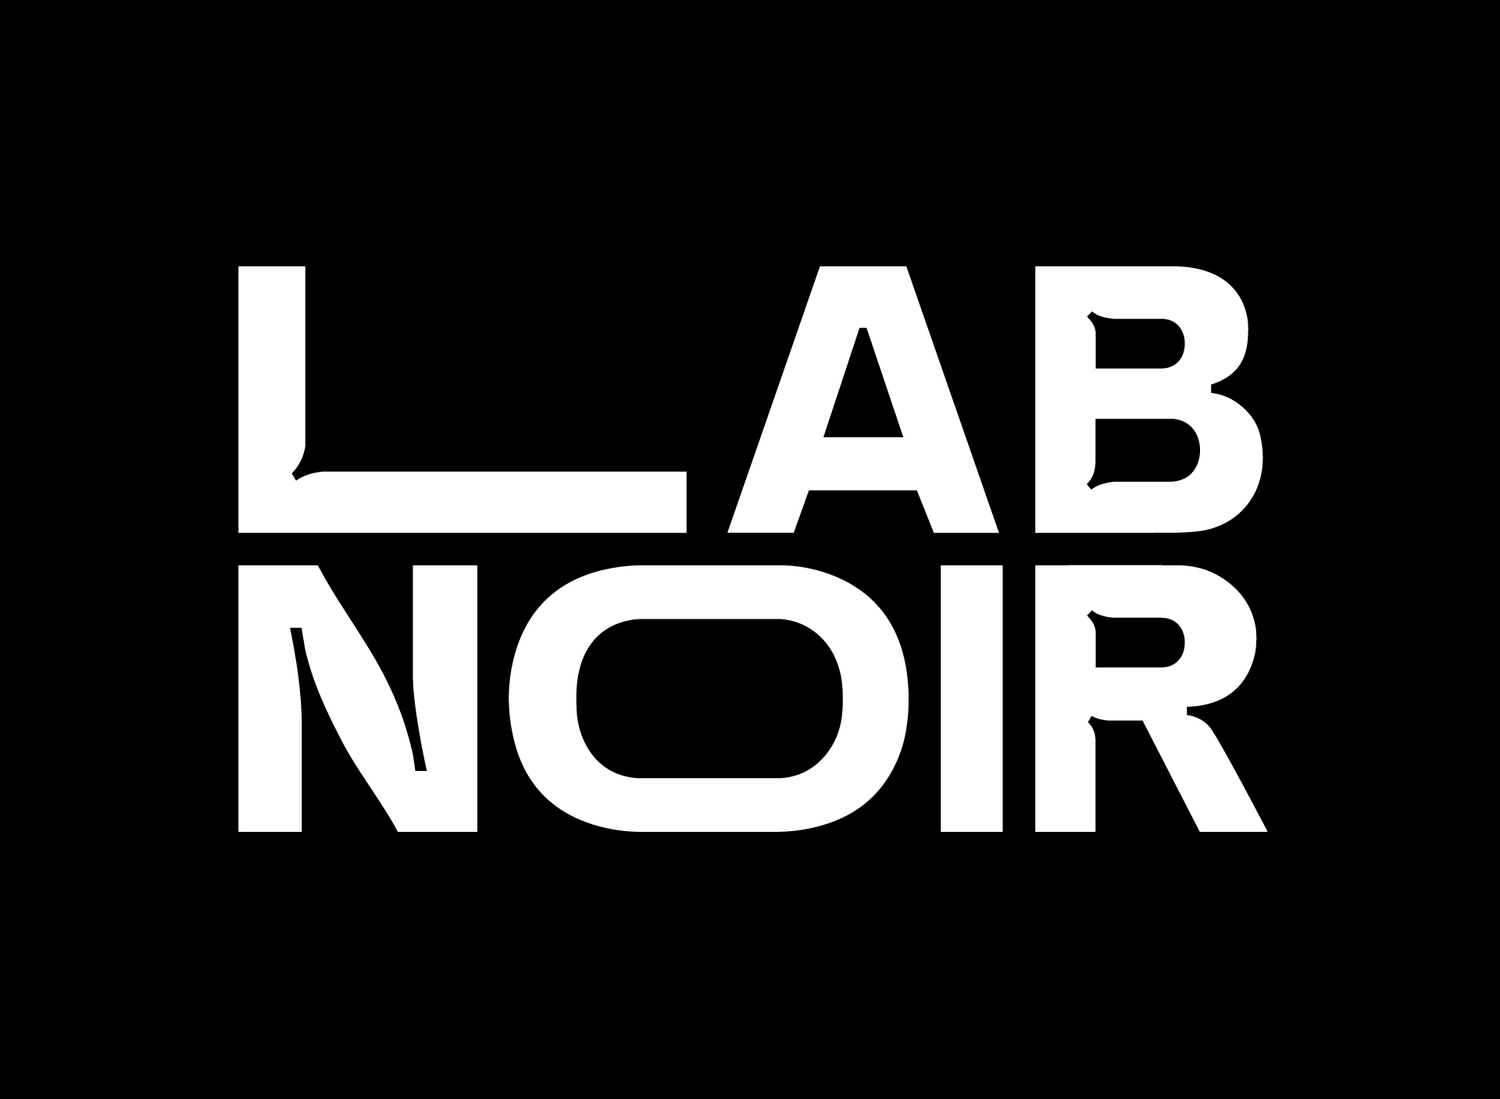 Lab Noir - Ambience Engineering